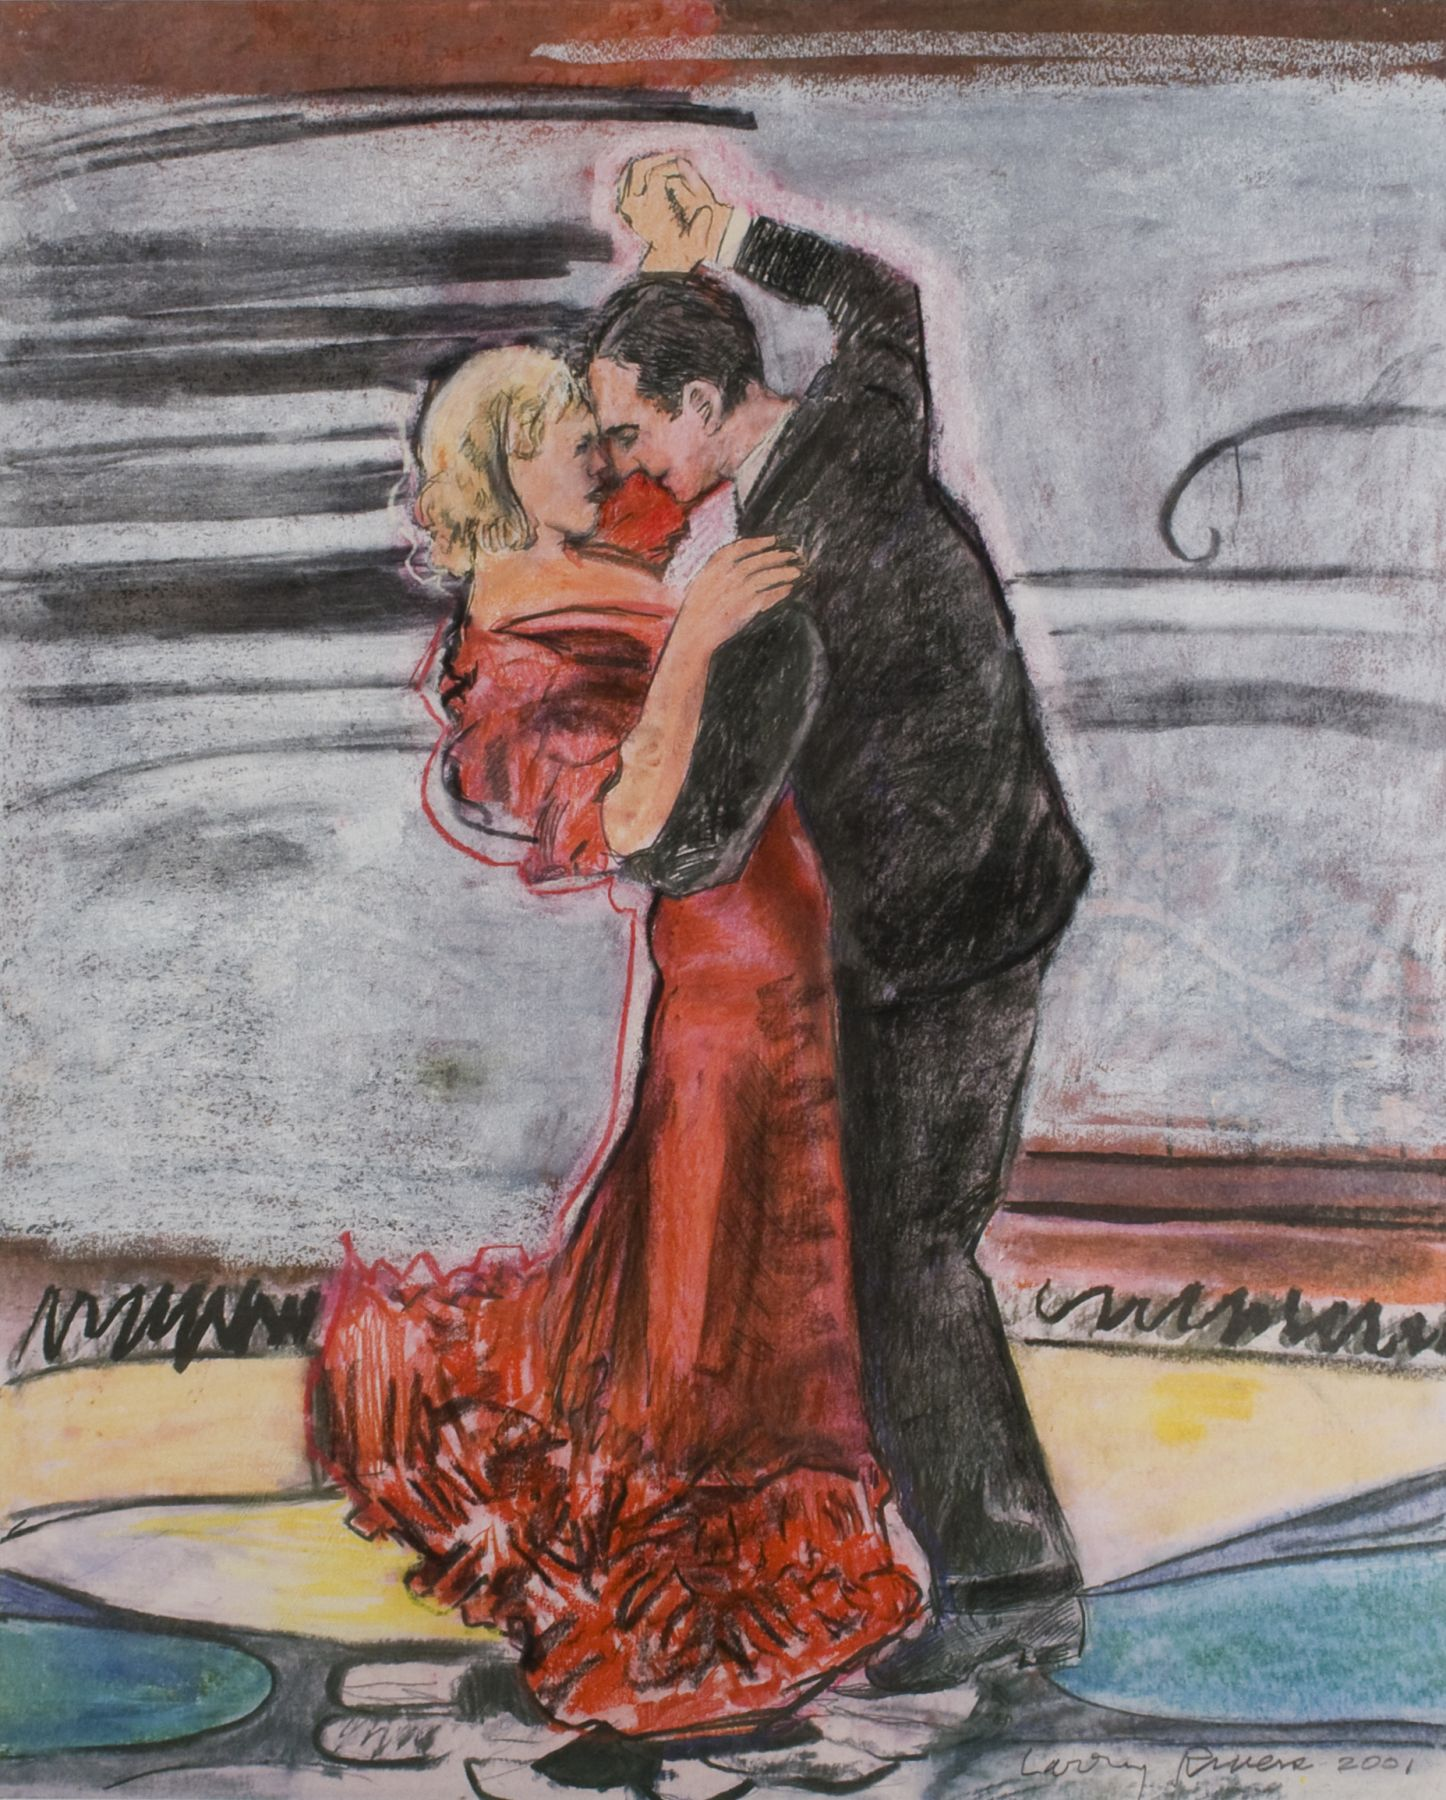 Larry Rivers, Dancers, 2001, pastel on paper, 36 x 29 inches